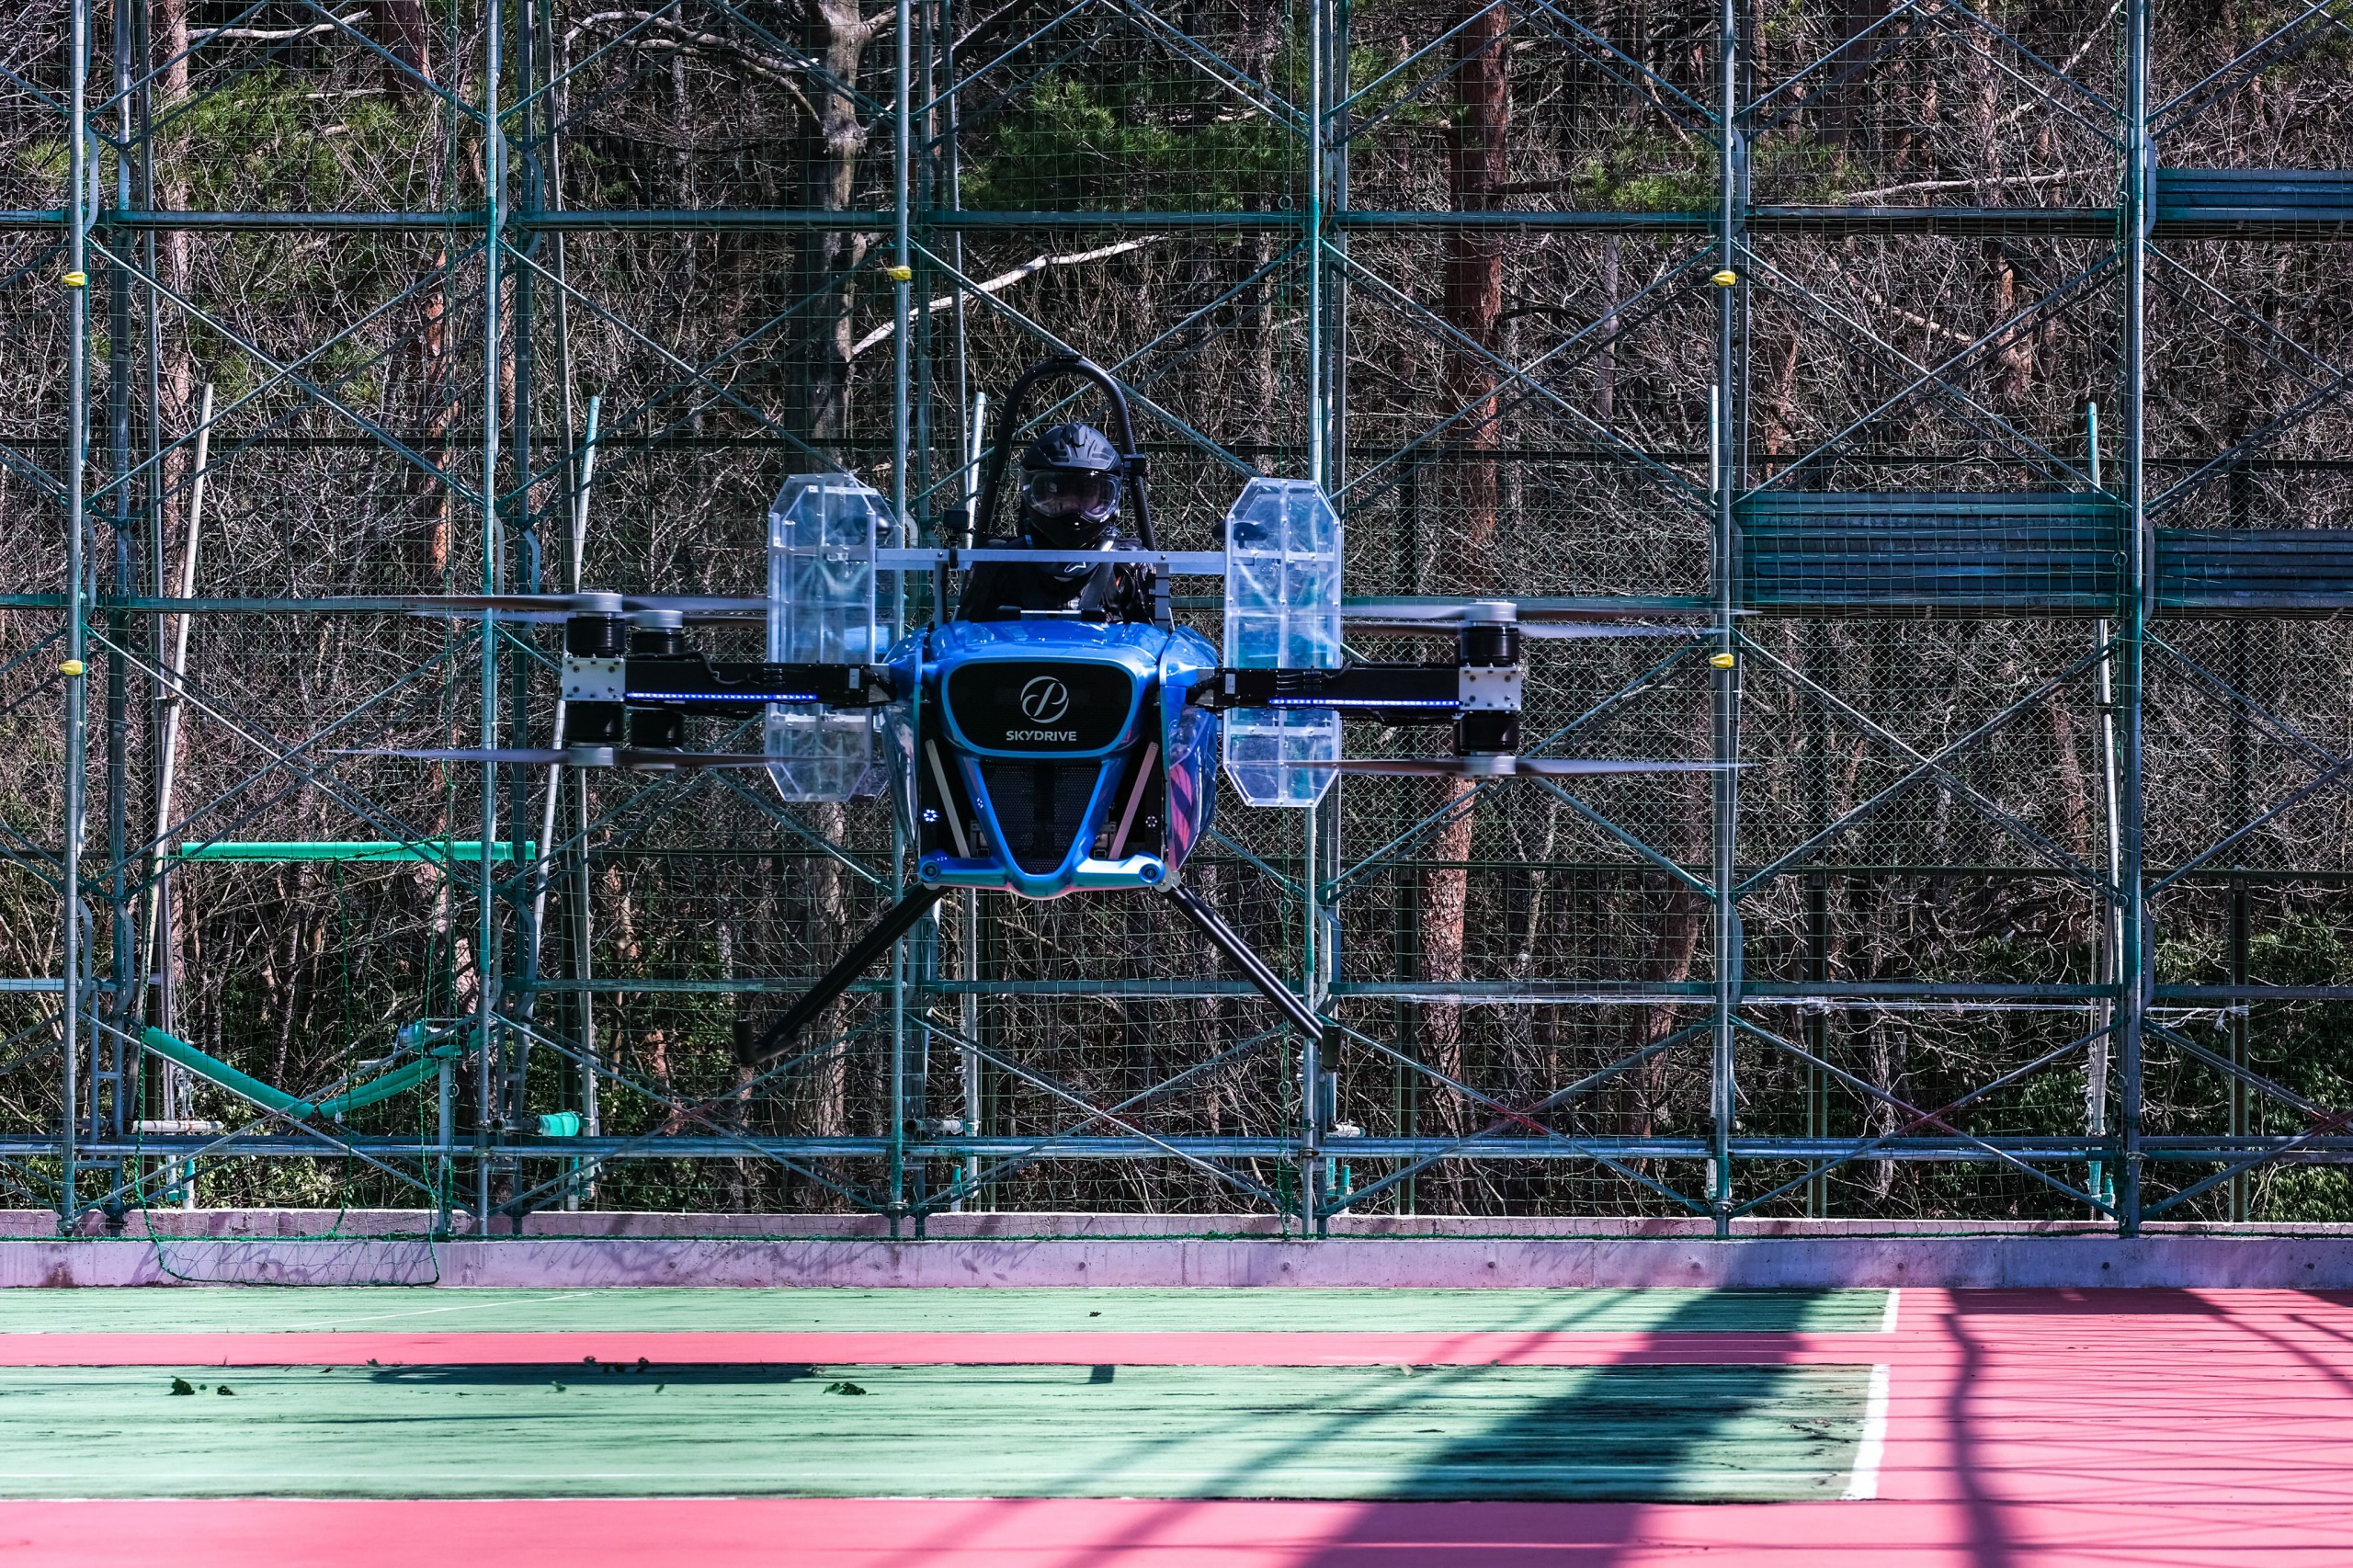 SkyDrive SD-02 eVTOL aircraft flight test.